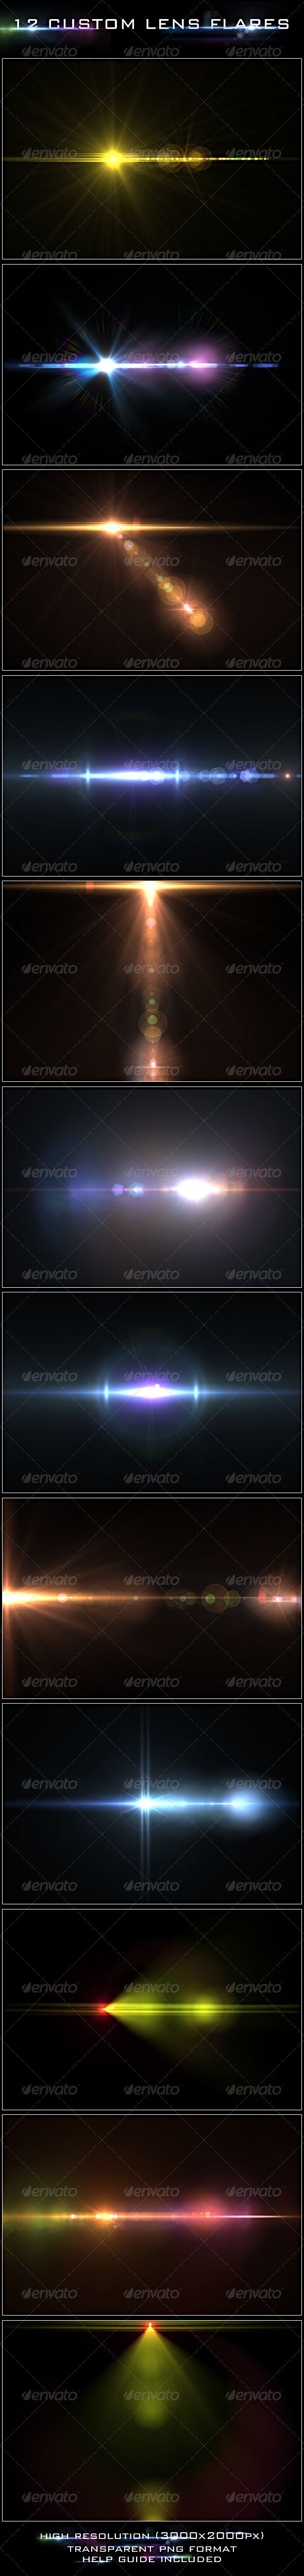 12 Custom Lens Flares — Transparent PNG #hot #pink • Available here → https://graphicriver.net/item/12-custom-lens-flares/2401160?ref=pxcr